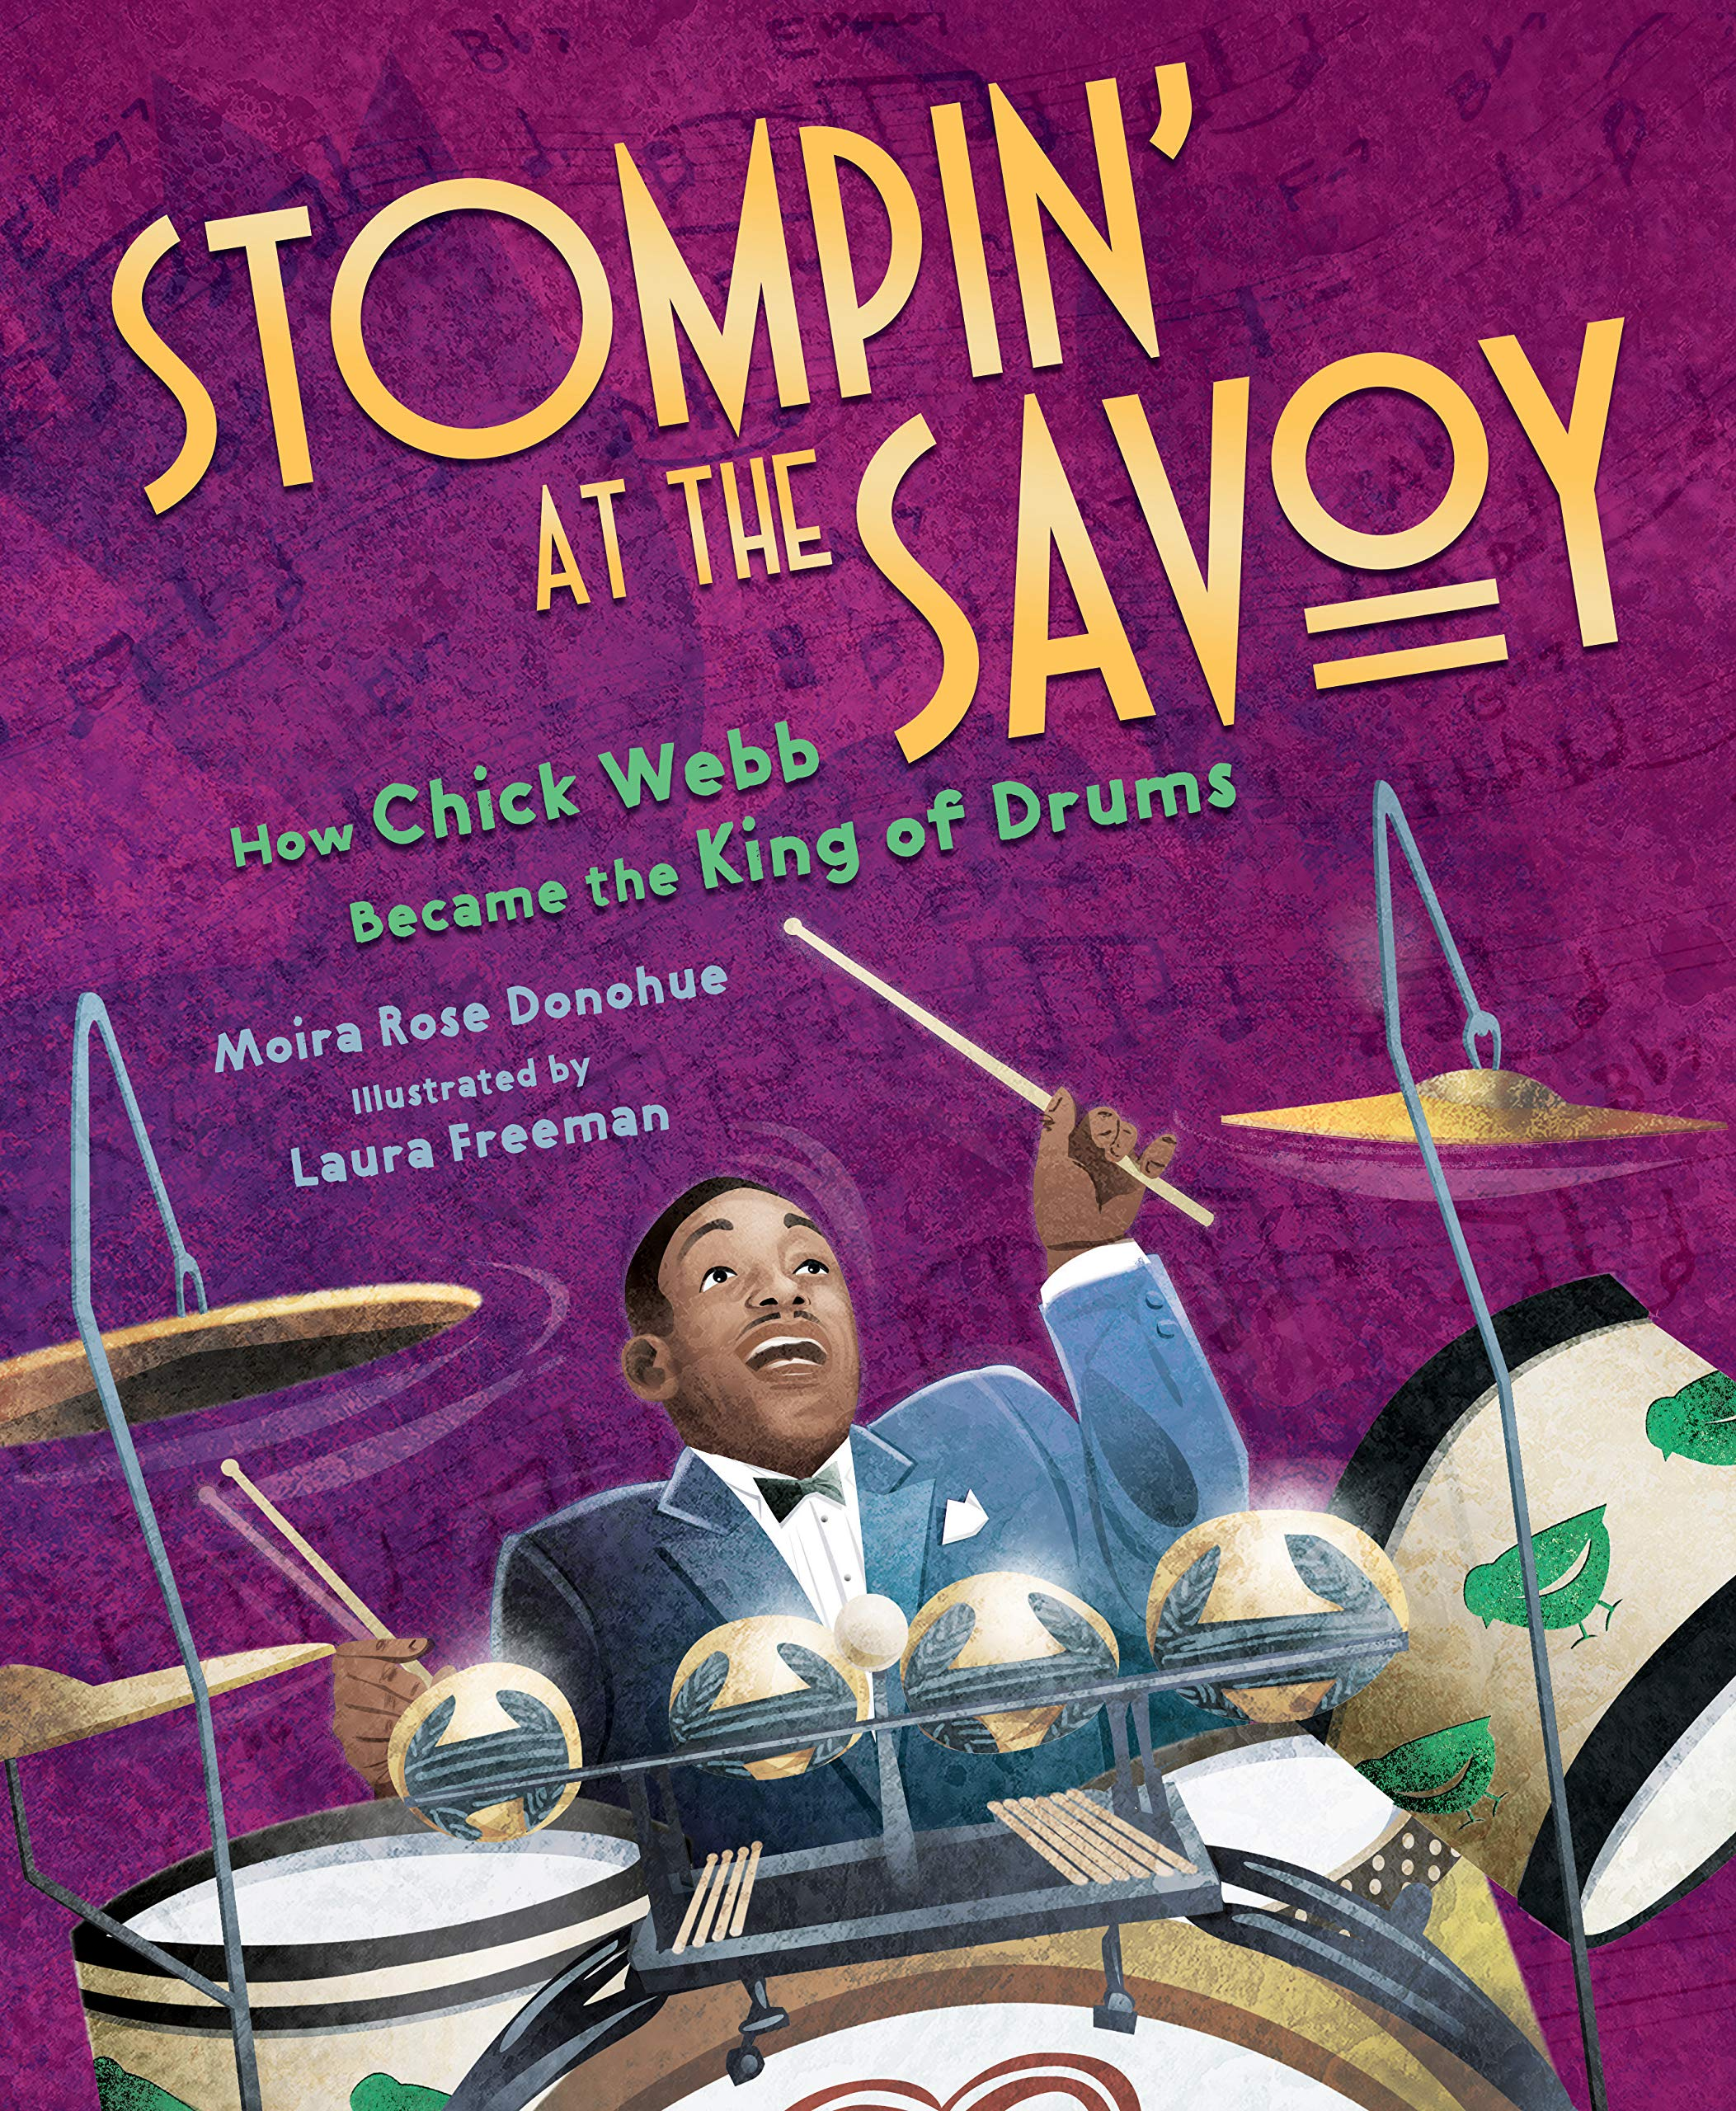 stompin_at_the_savoy